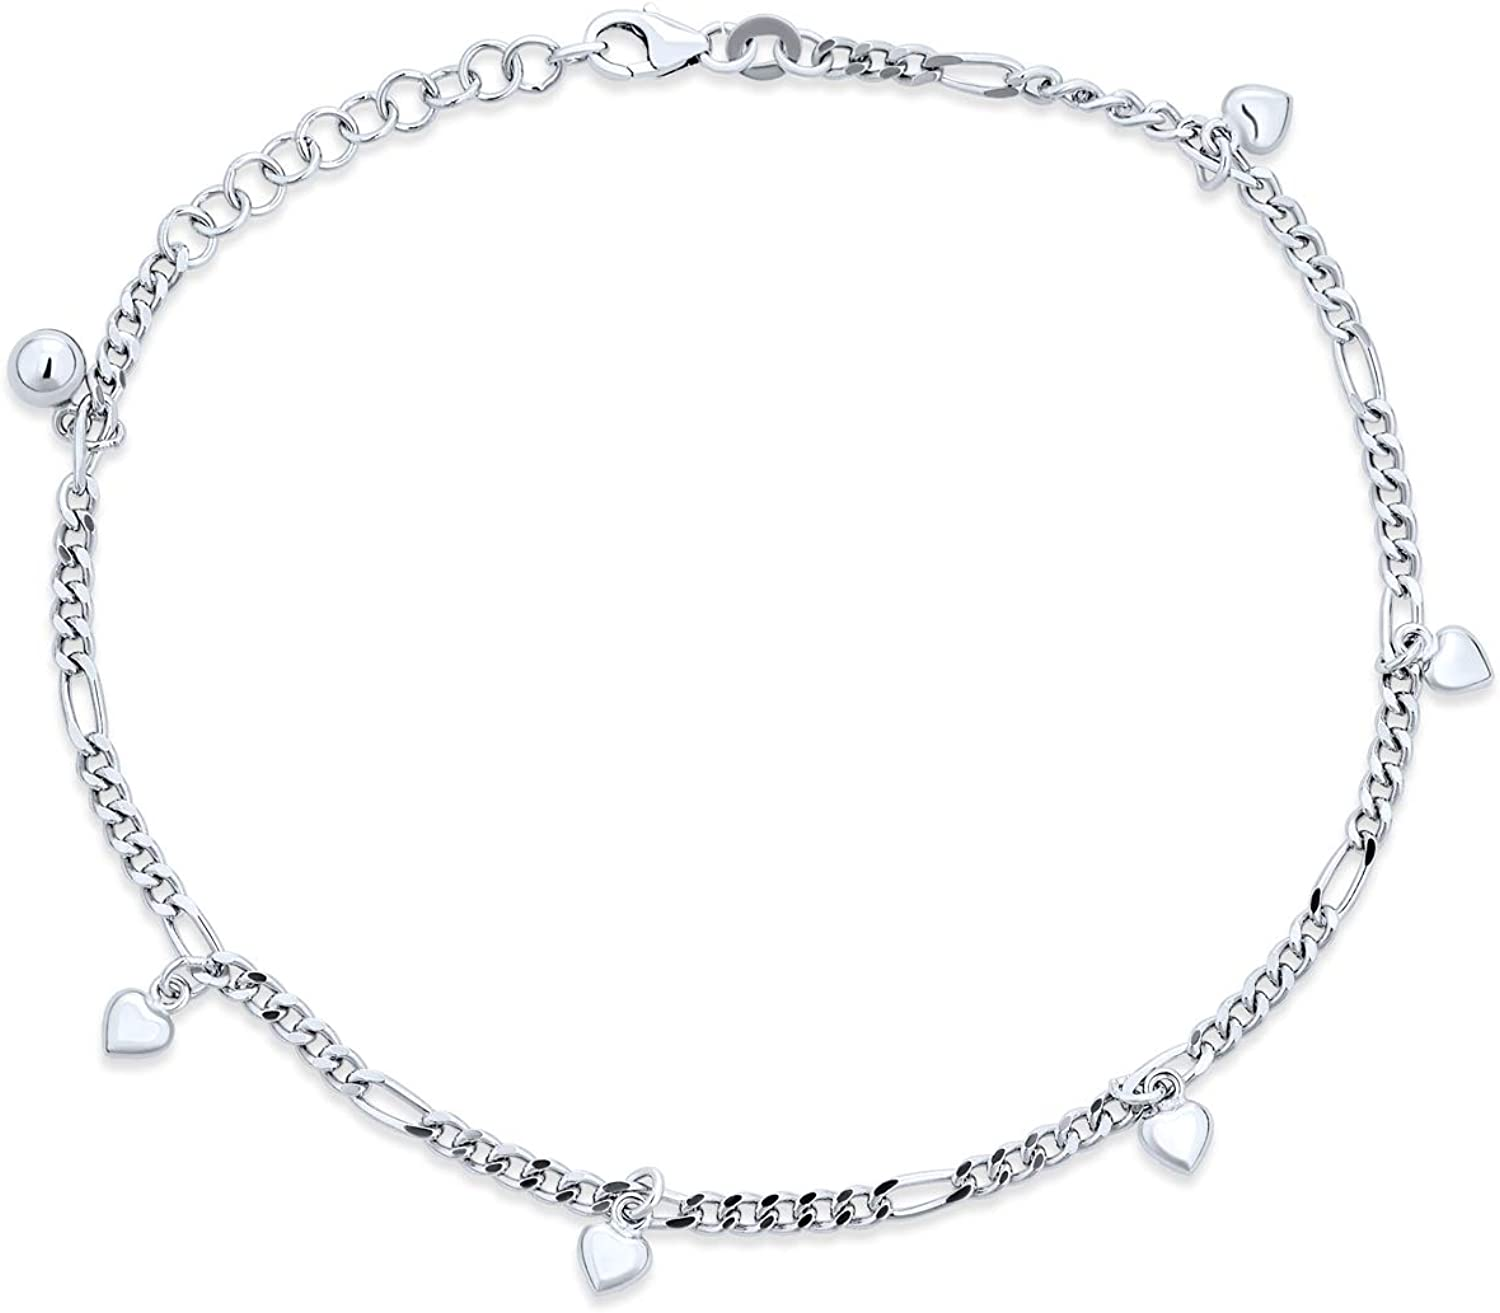 Silver Anklet including 4 Star Charms with an Adjustable Length